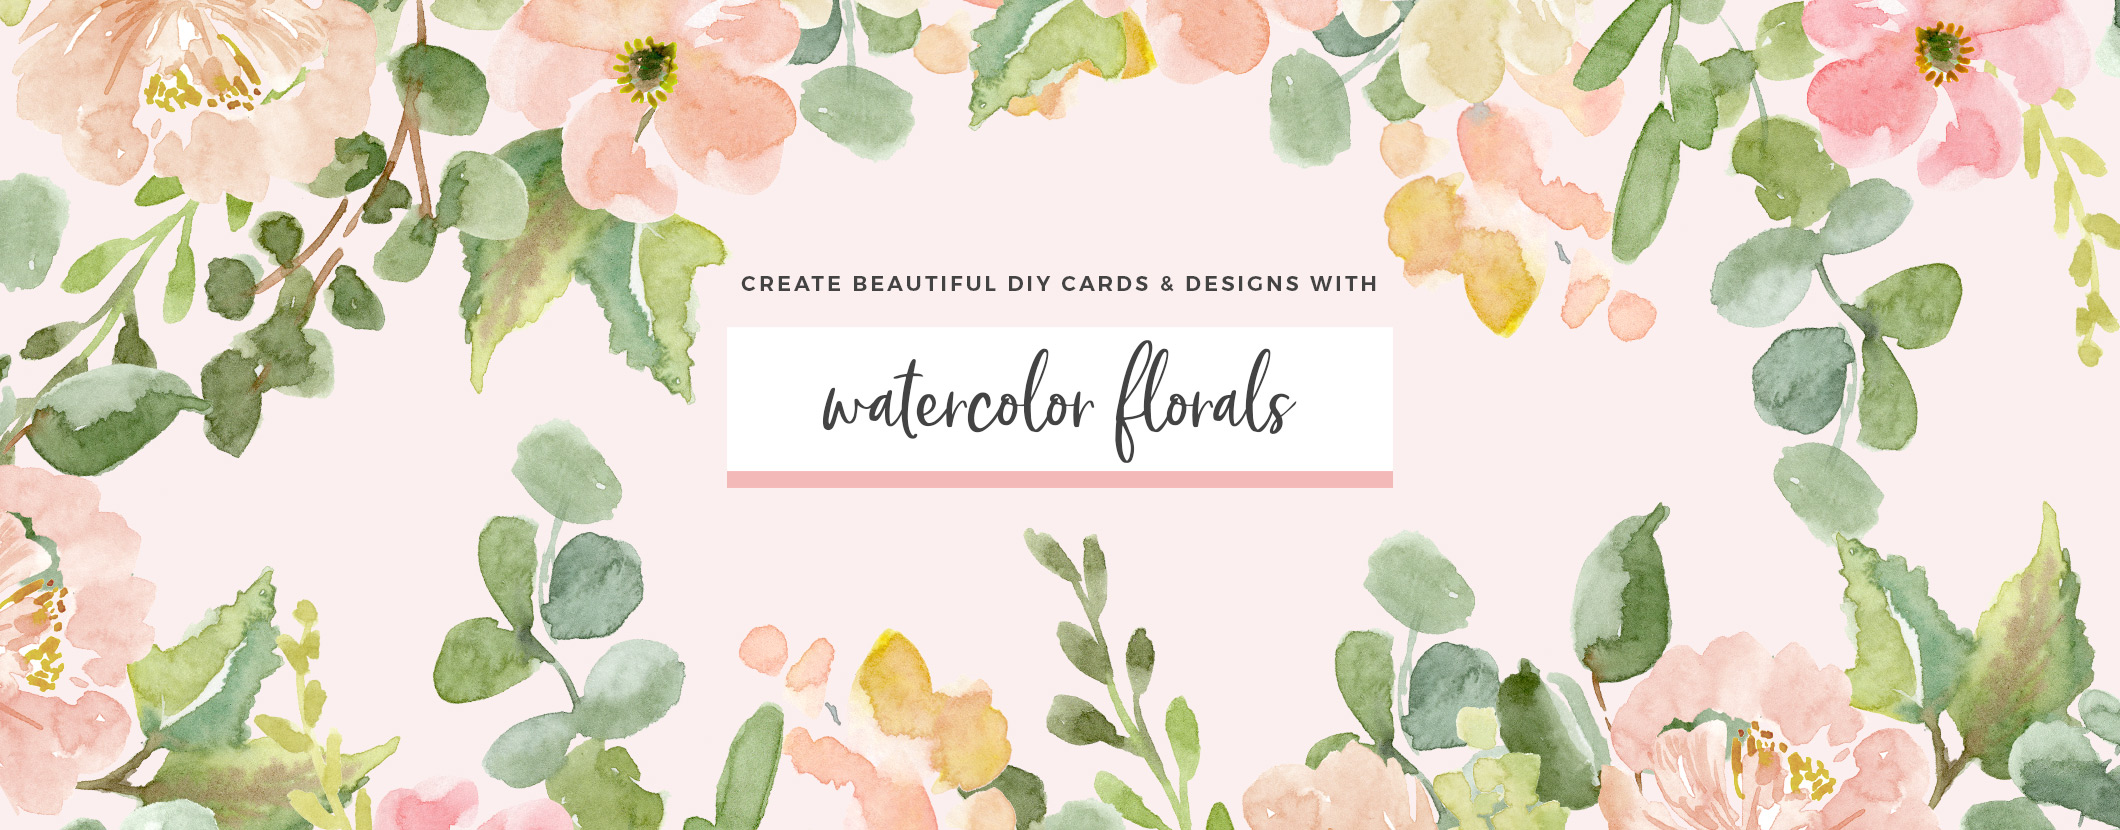 Beautiful watercolor clipart graphic free library Watercolor Flowers Clipart & Business Branding Resources graphic free library